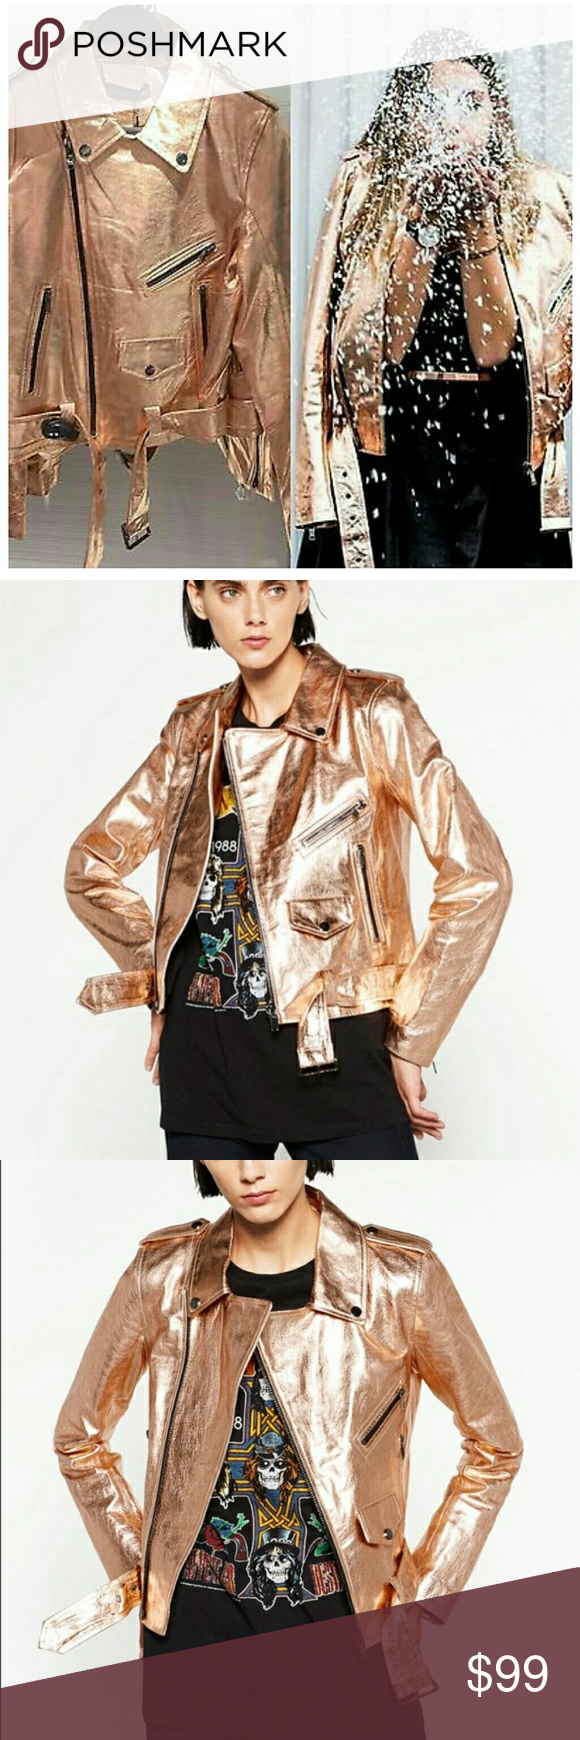 Zara Pink Rose Gold Metallic Leather Jacket Authentic Zara